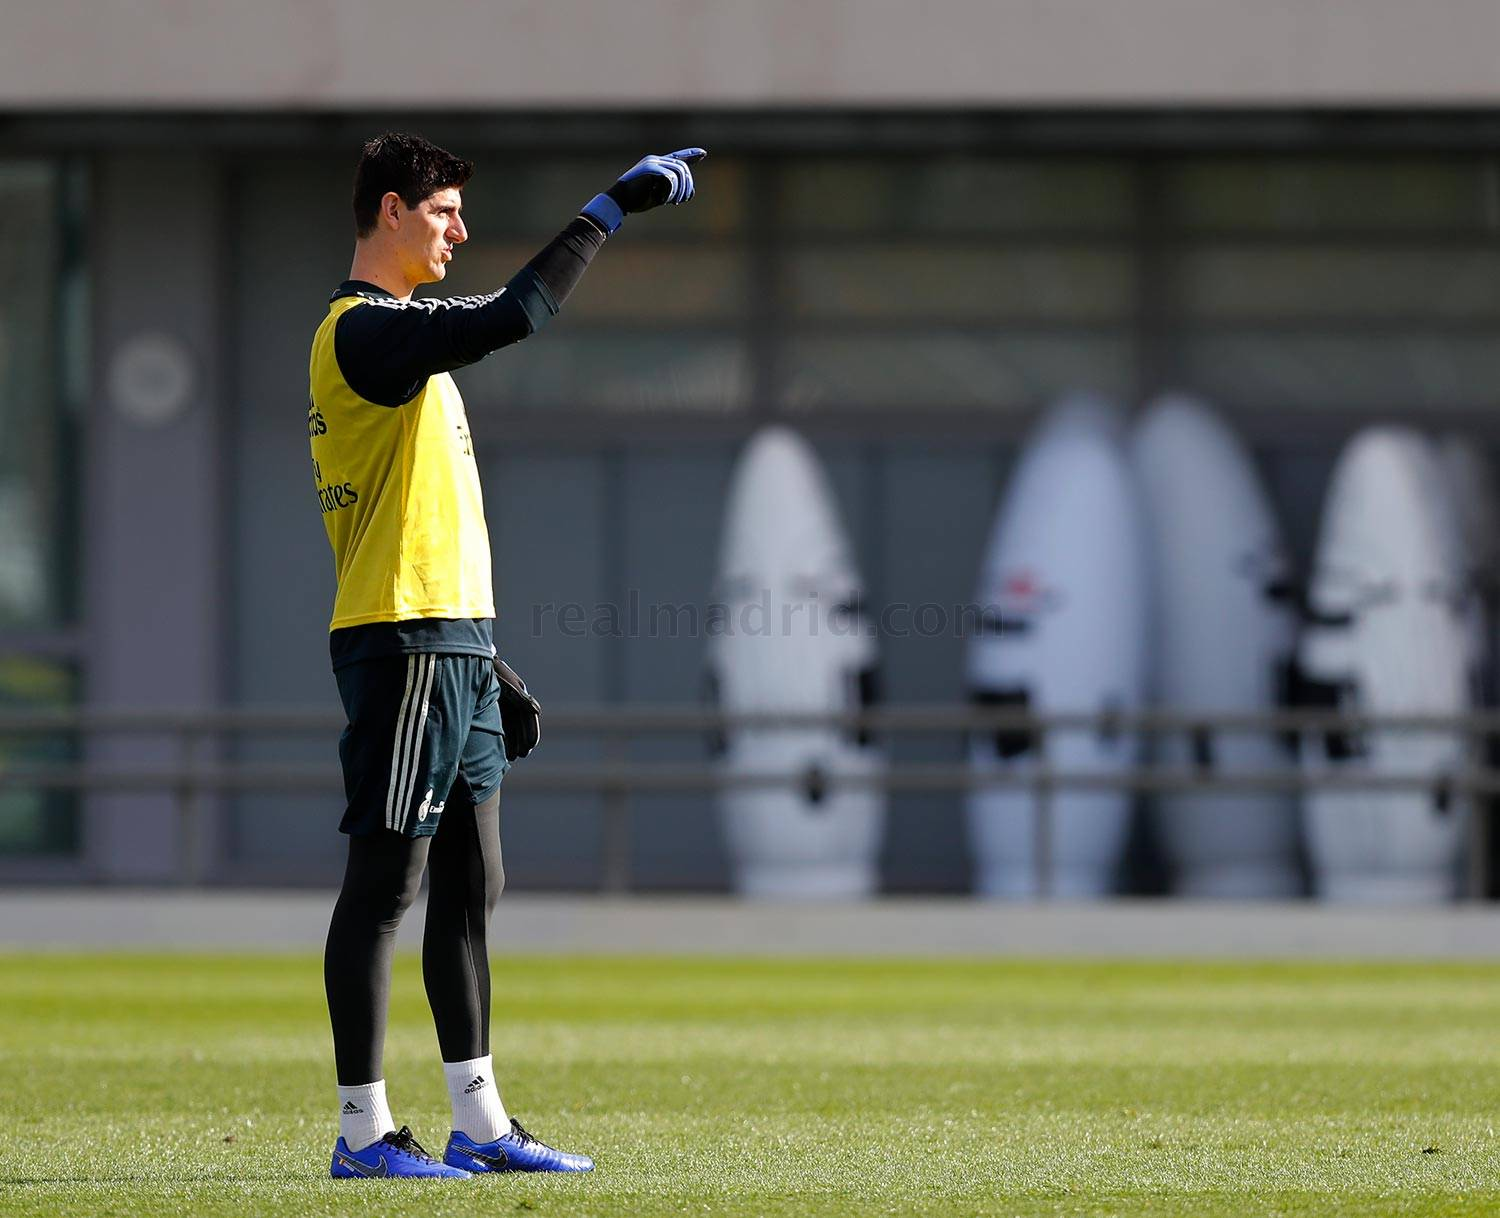 Real Madrid - Entrenamiento del Real Madrid - 21-11-2018